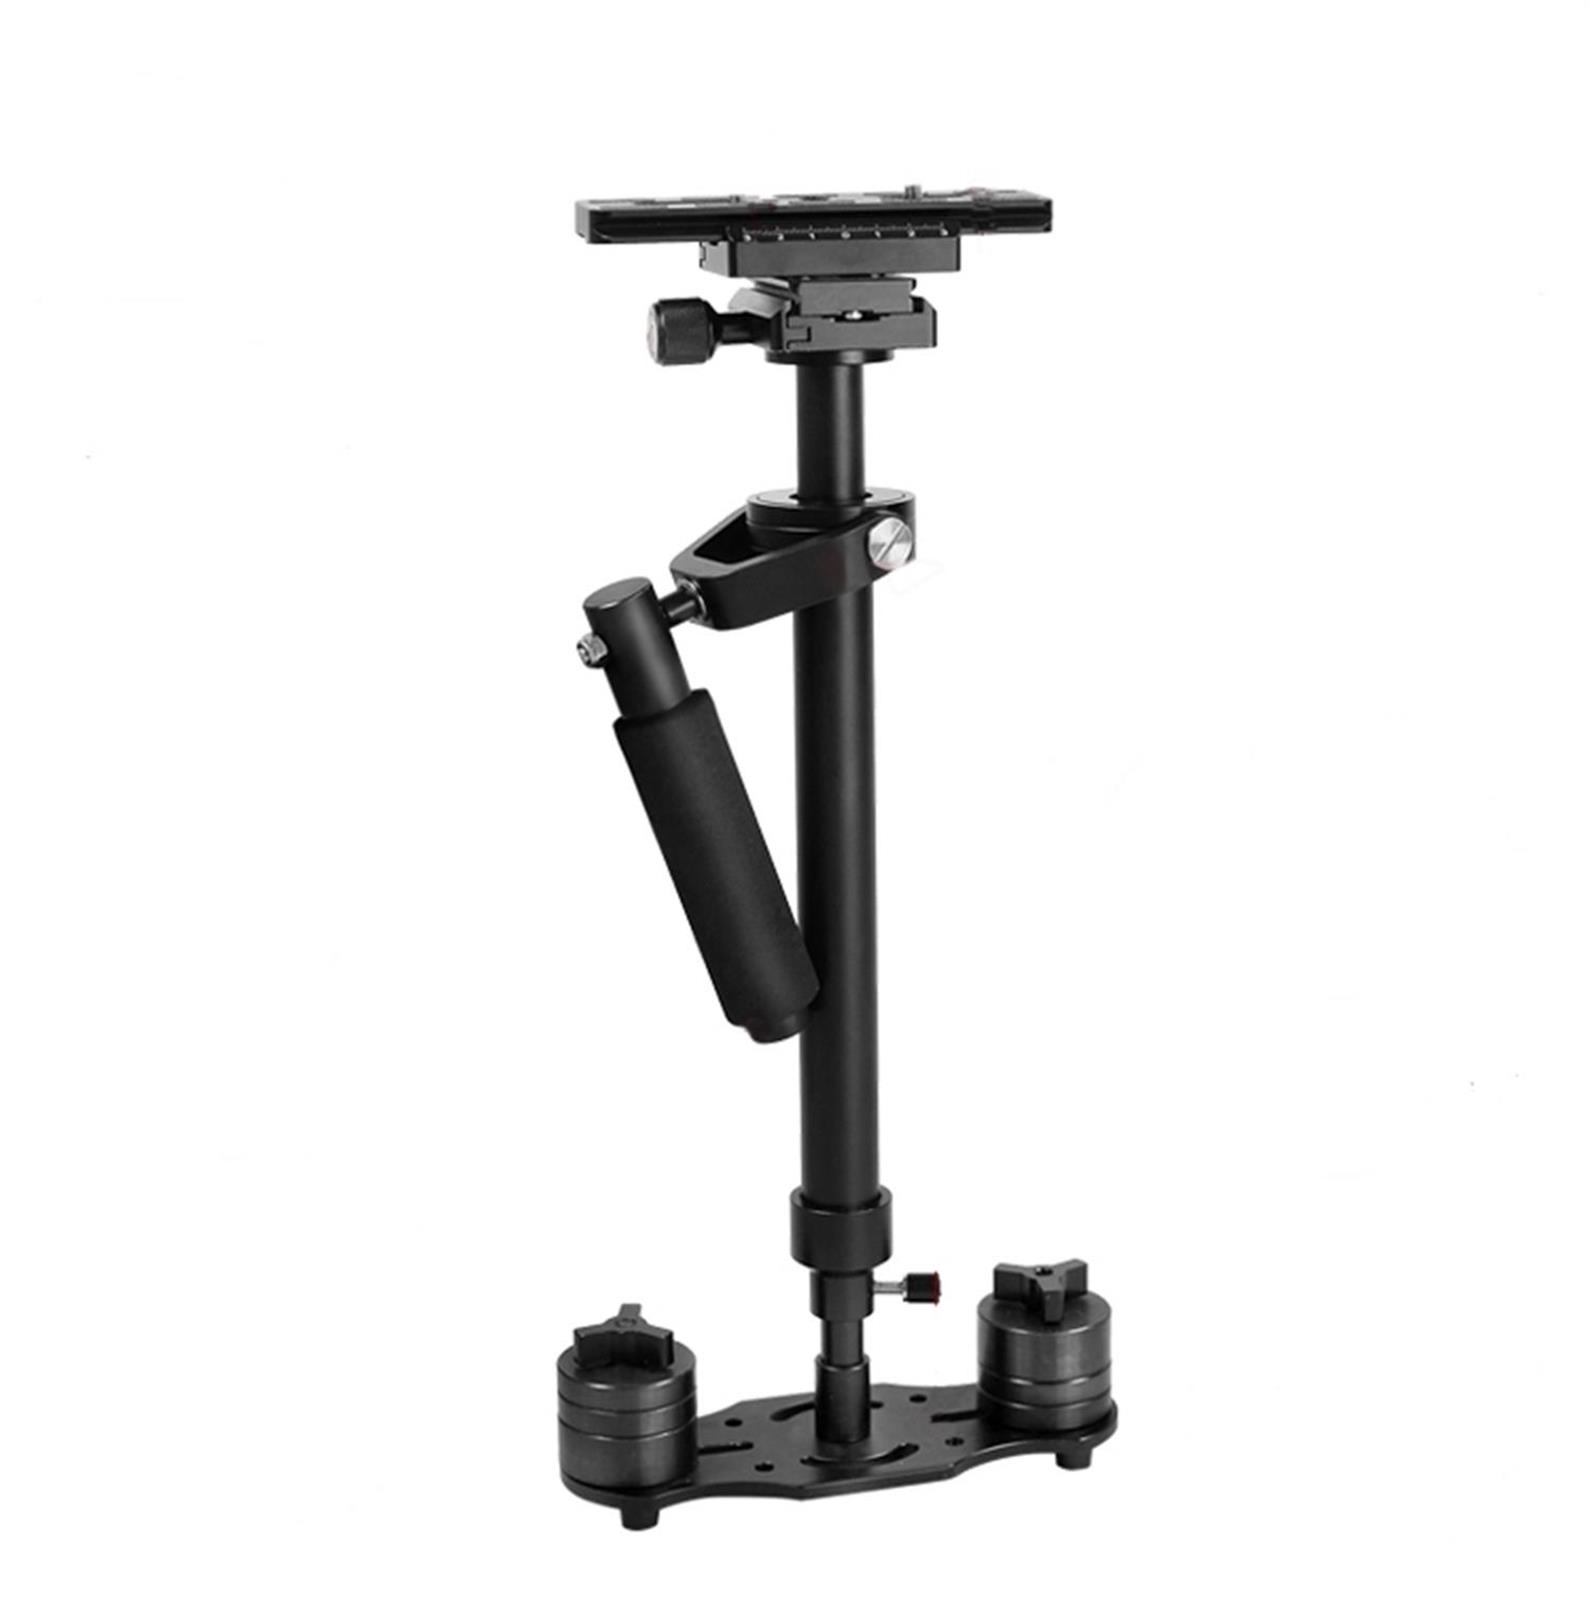 Top Selling YELANGU Photographic Apparatus Compact DSLR Handle Gimbal Stabilizer Steadycam